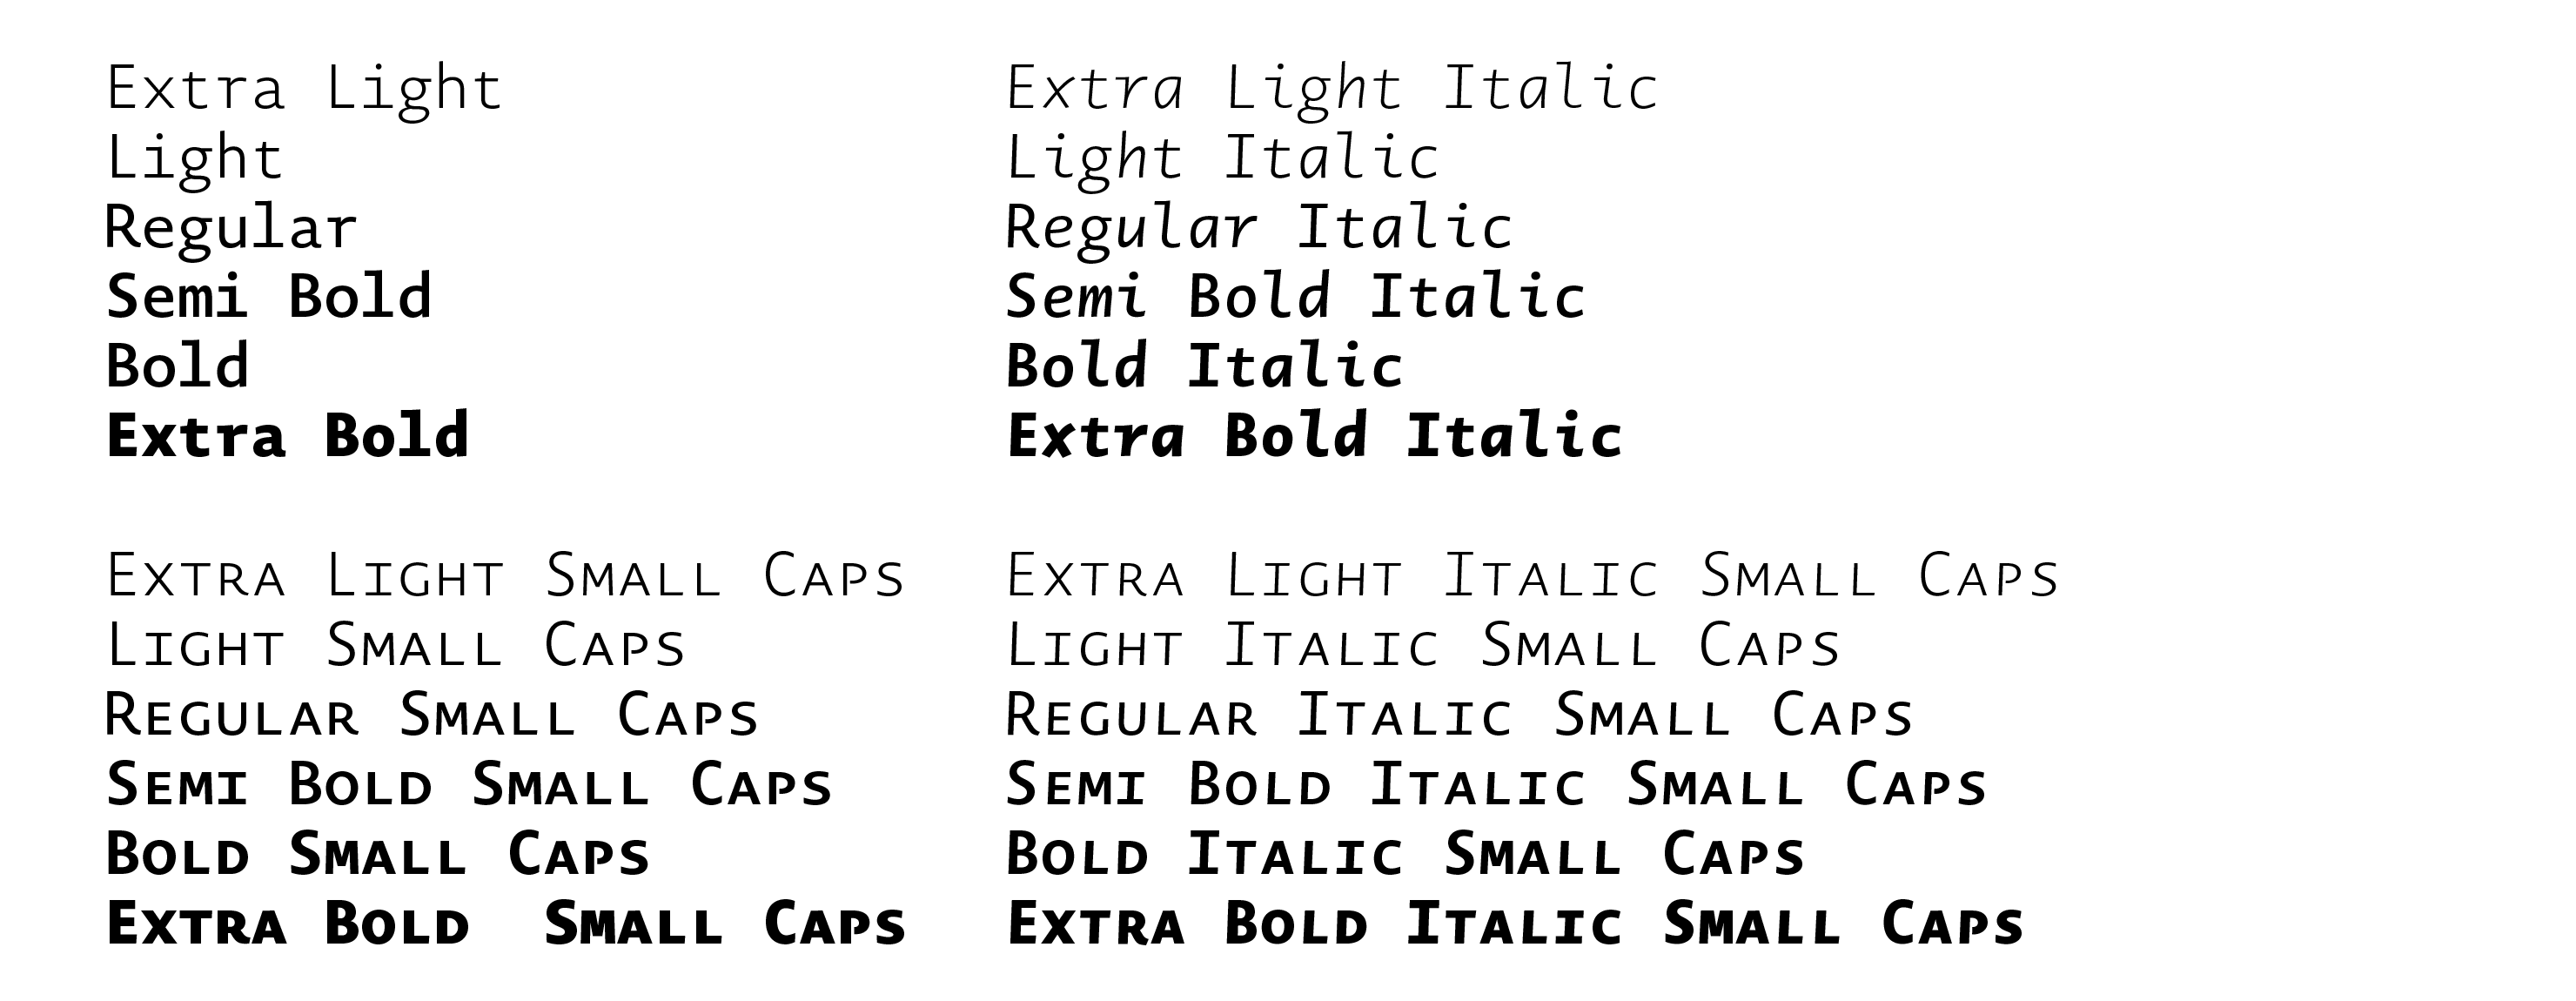 Typeface Novel Mono C01 Atlas Font Foundry